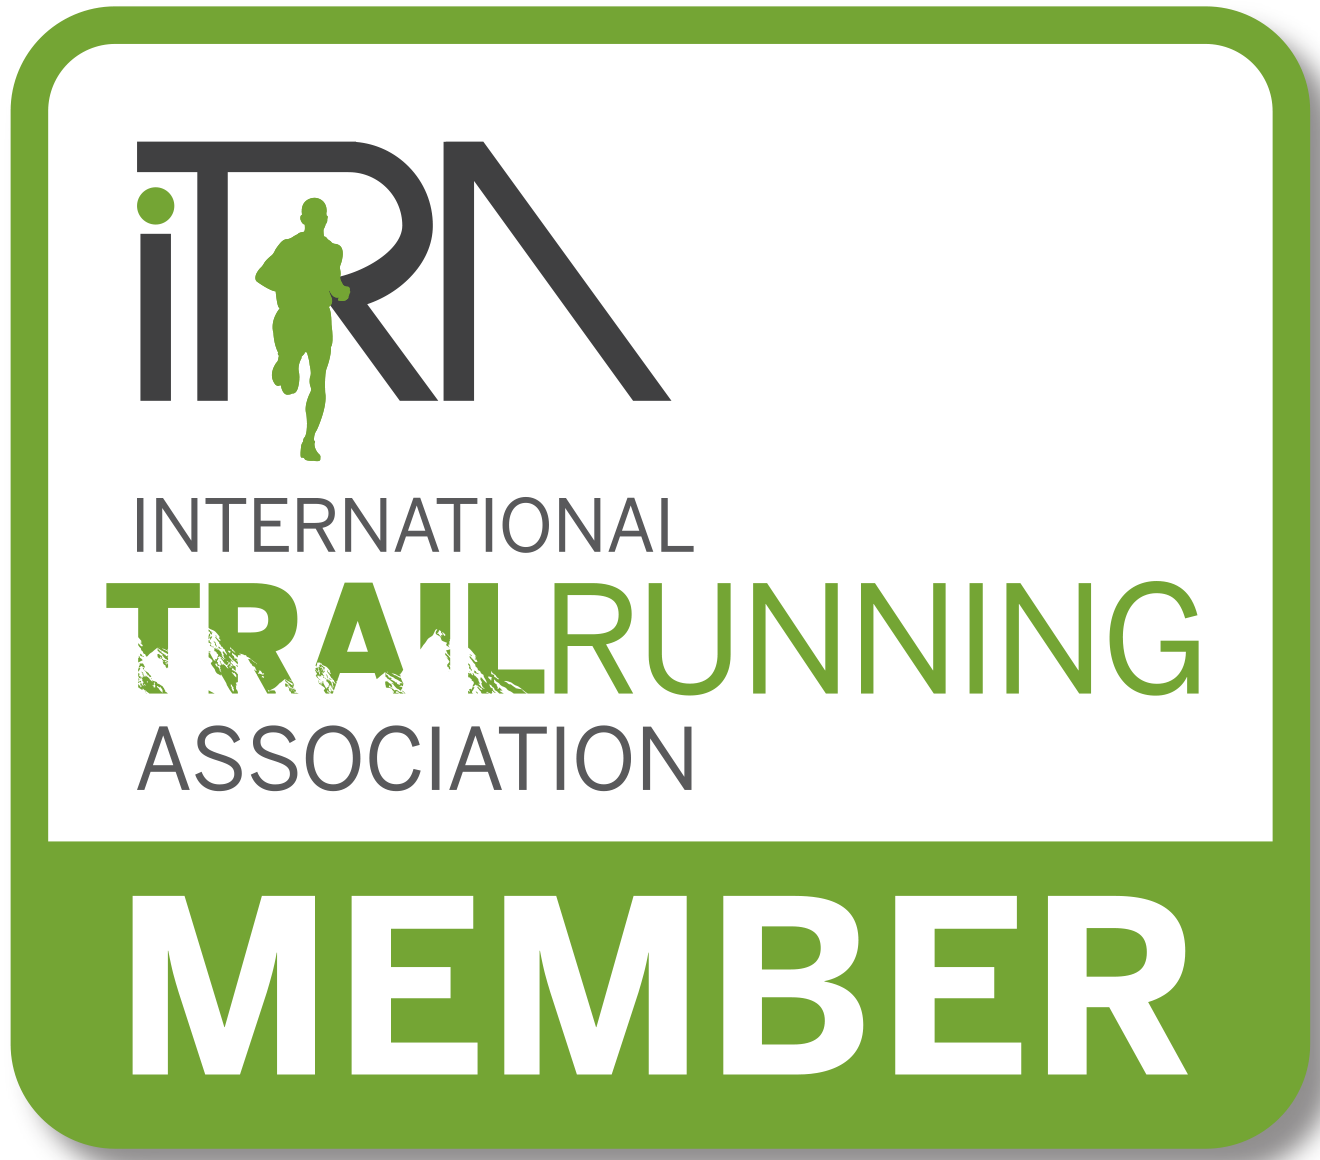 https://kat100.at/wp-content/uploads/2018/10/ITRA-trail-running-association.png